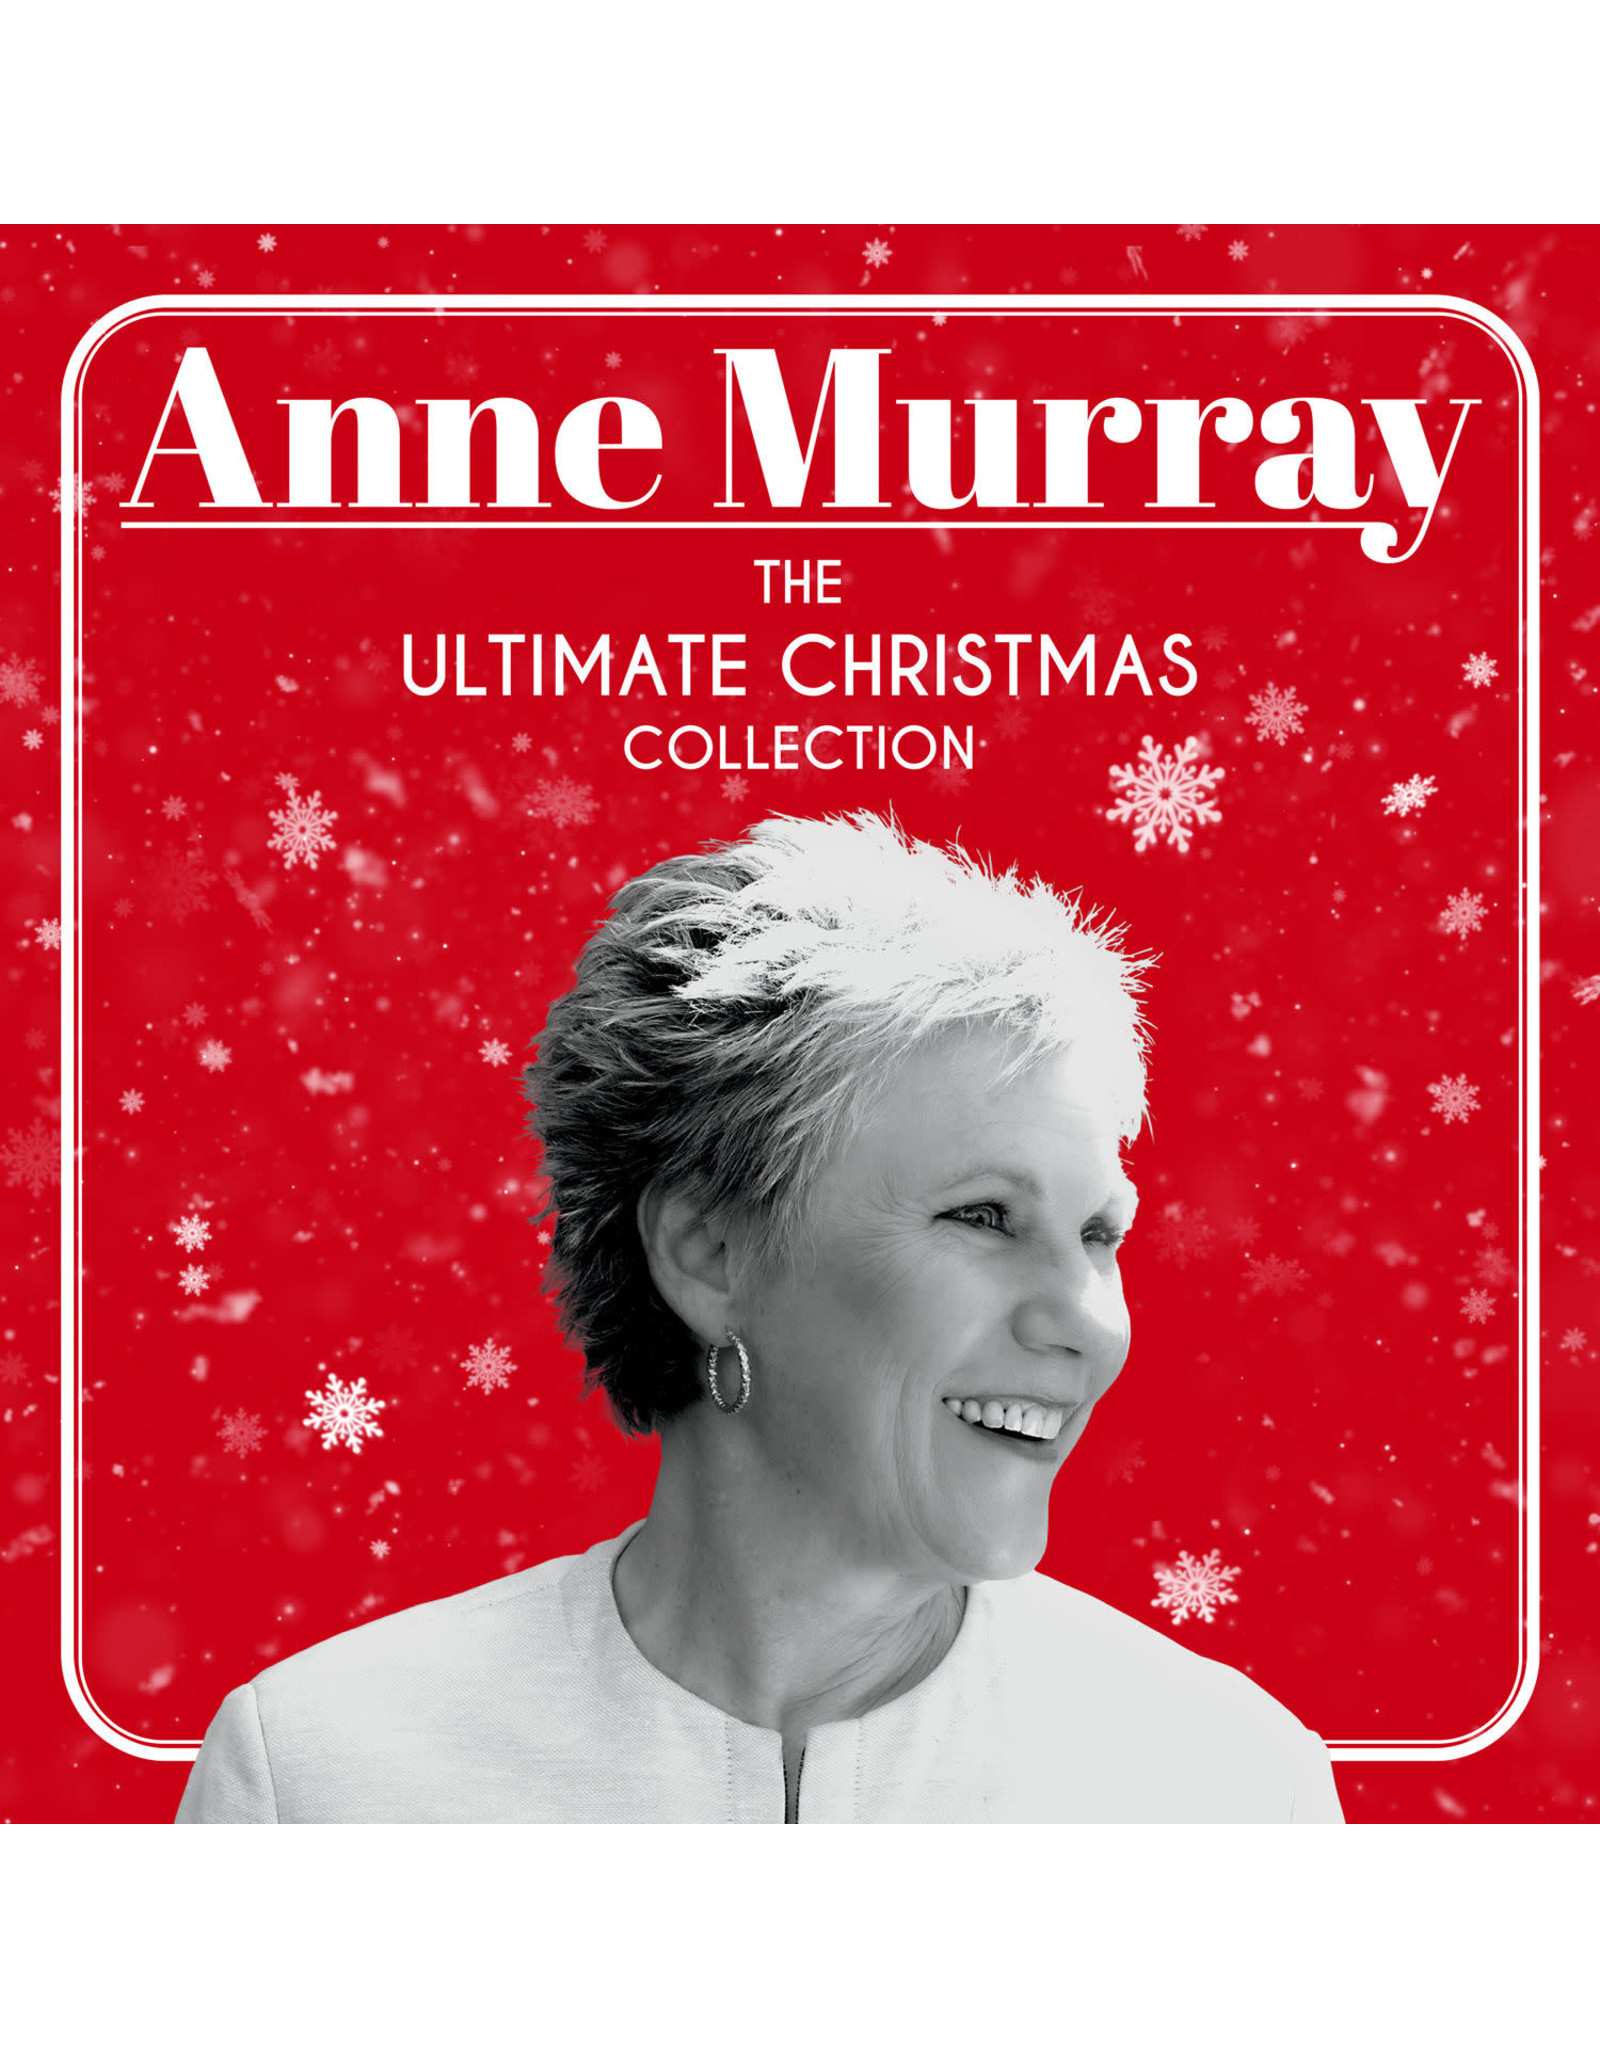 Anne Murray - The Ultimate Christmas